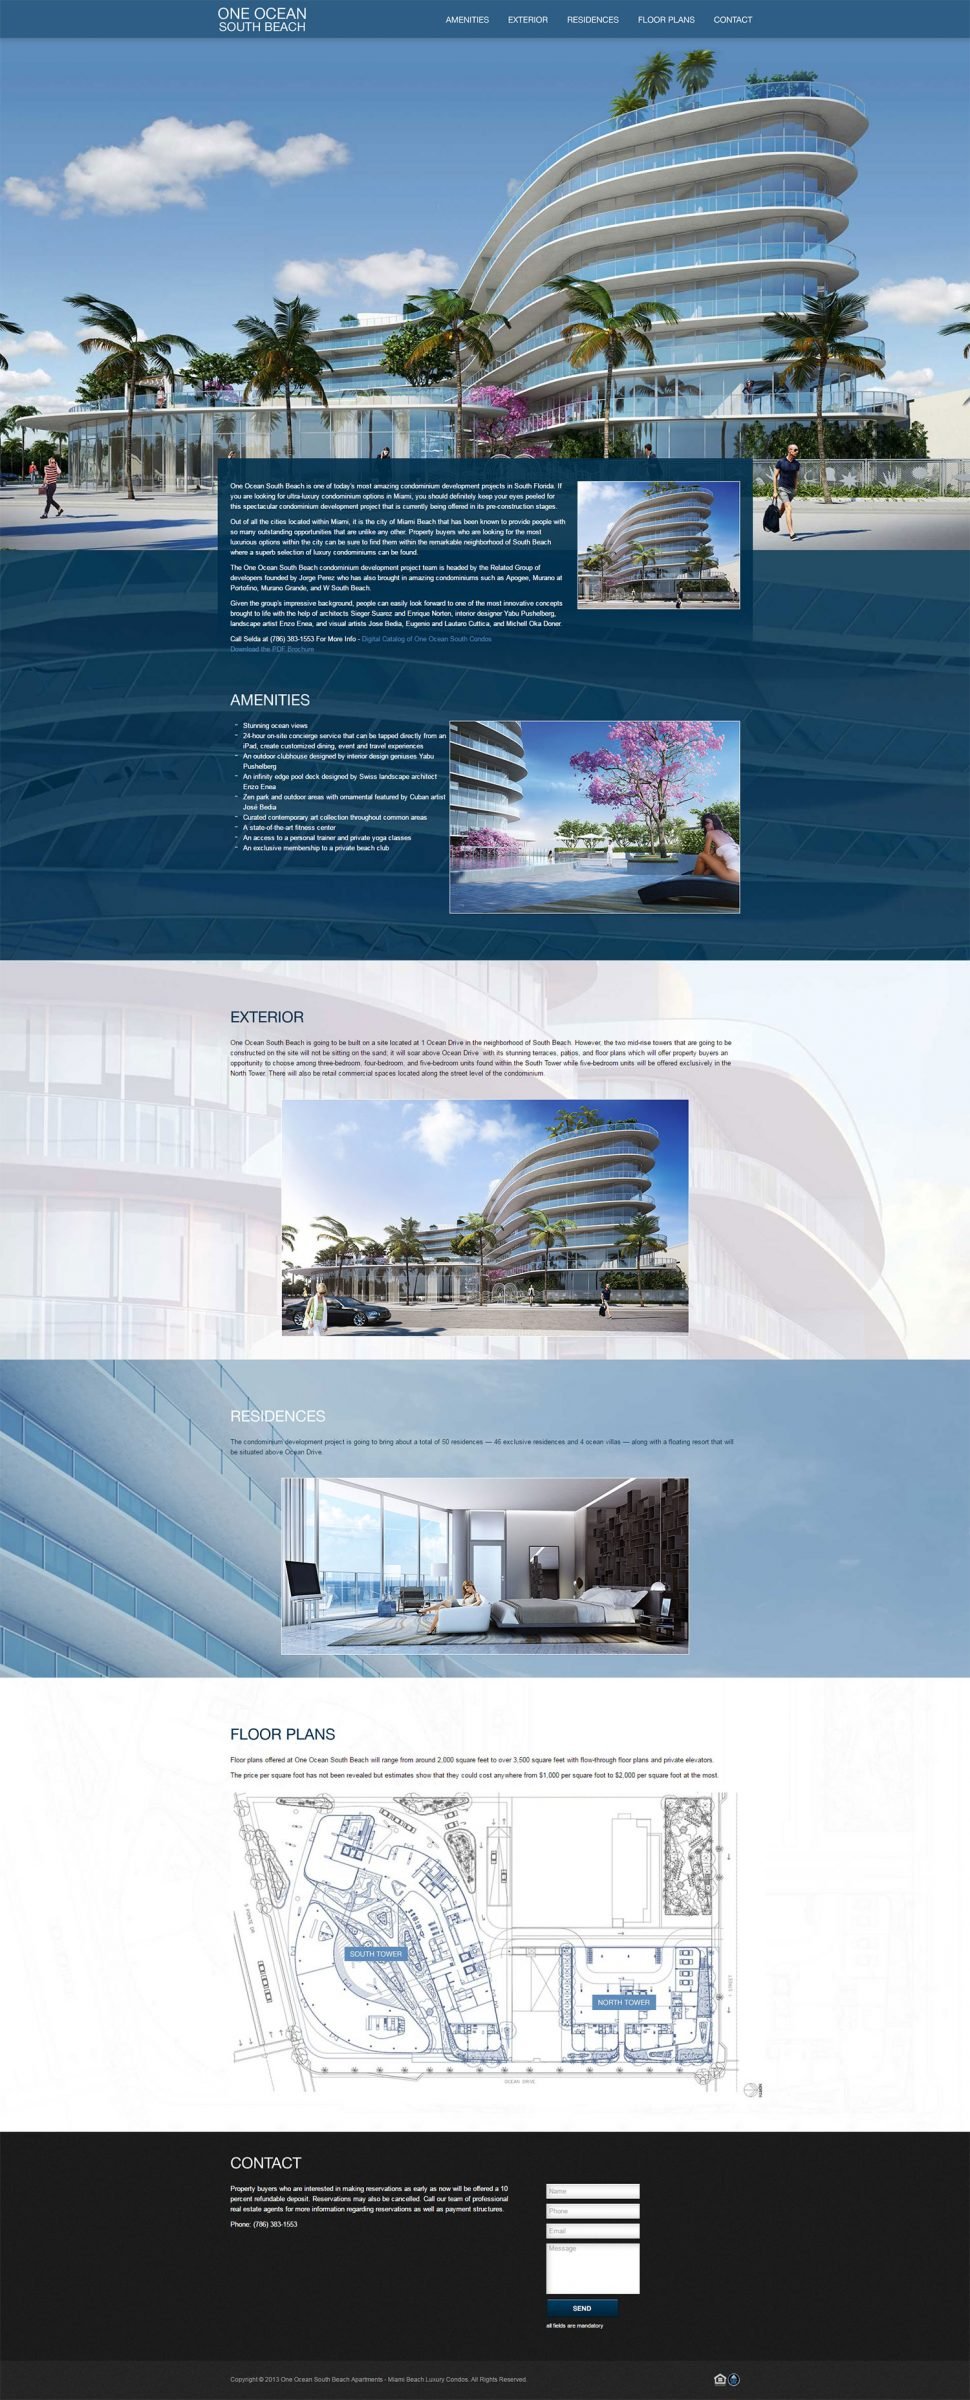 OneOceanApartments.com